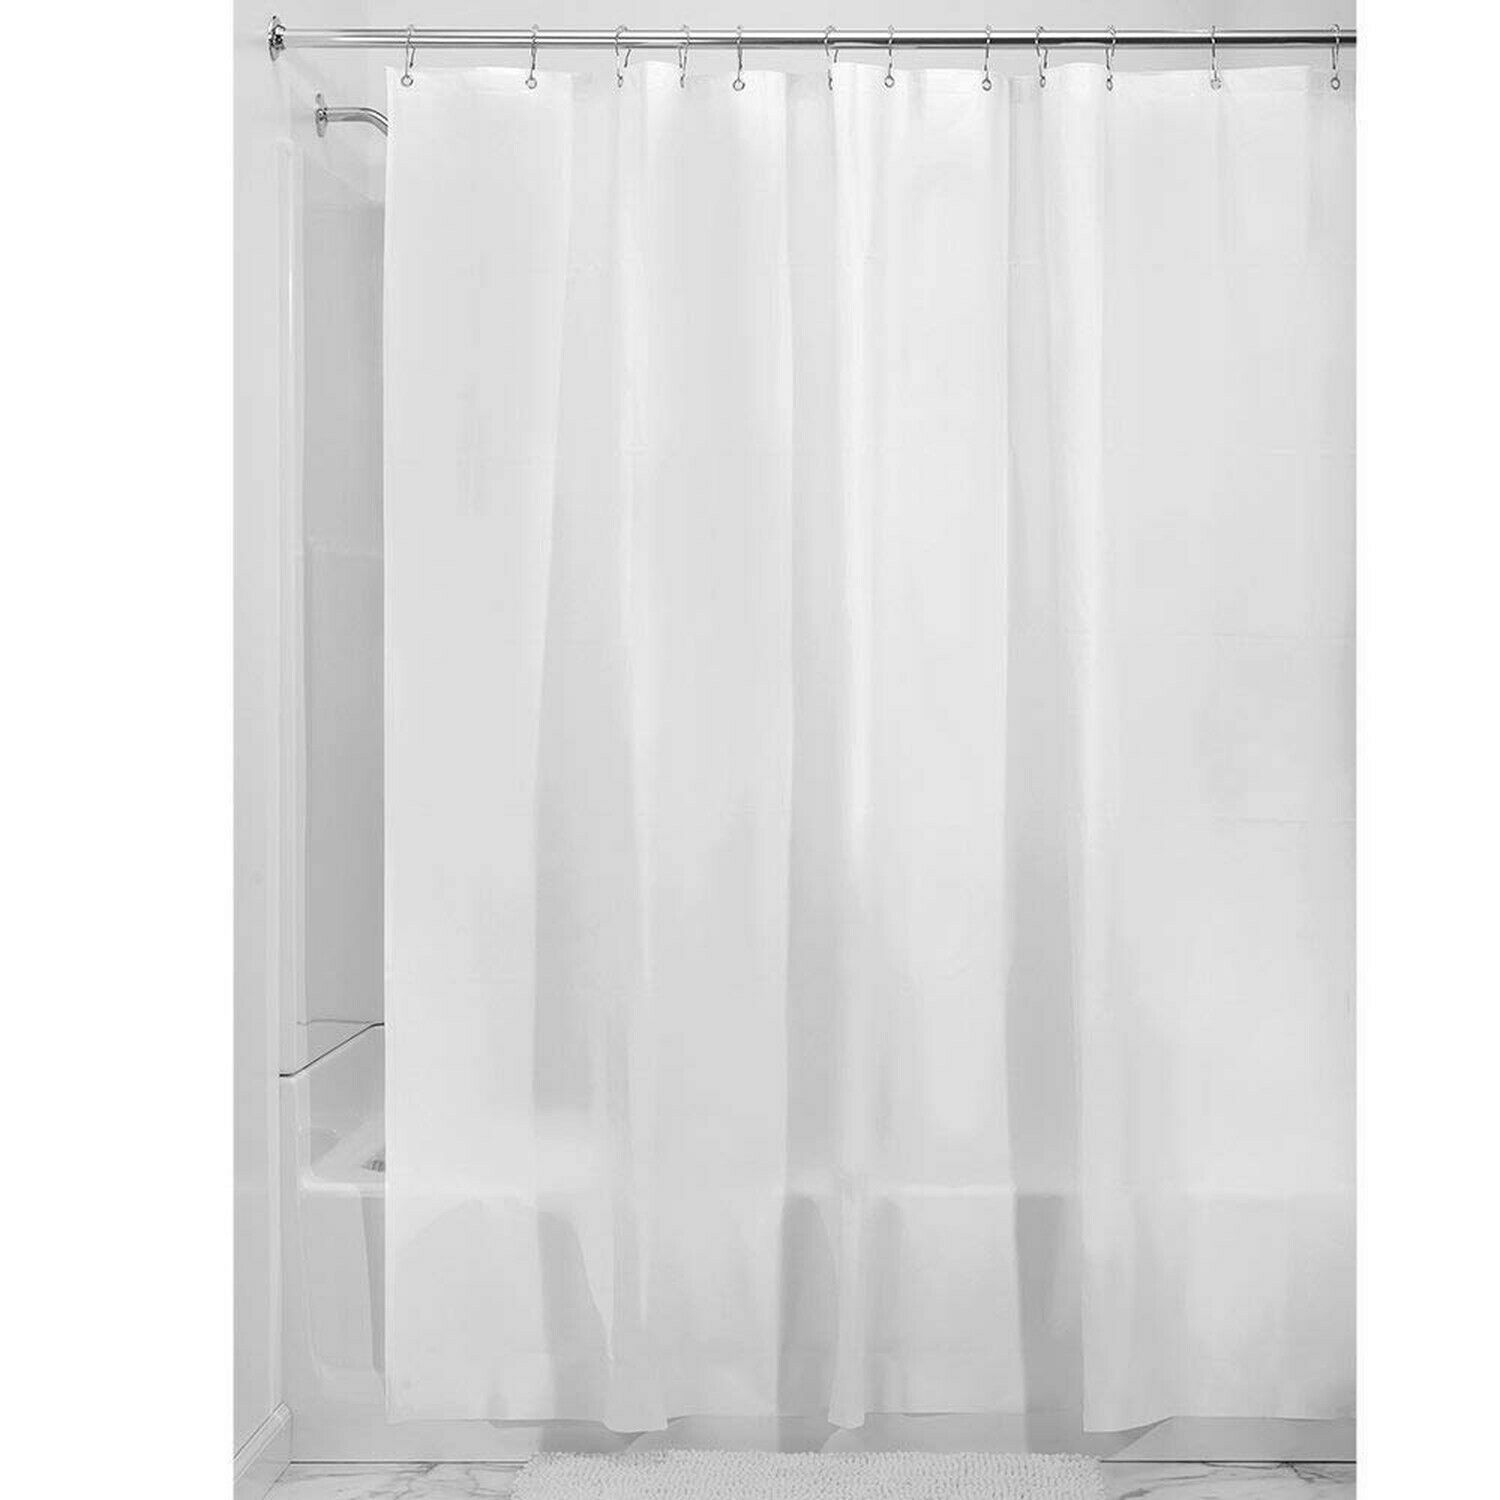 InterDesign 15262 Frost Extra Long Shower Curtain Liner